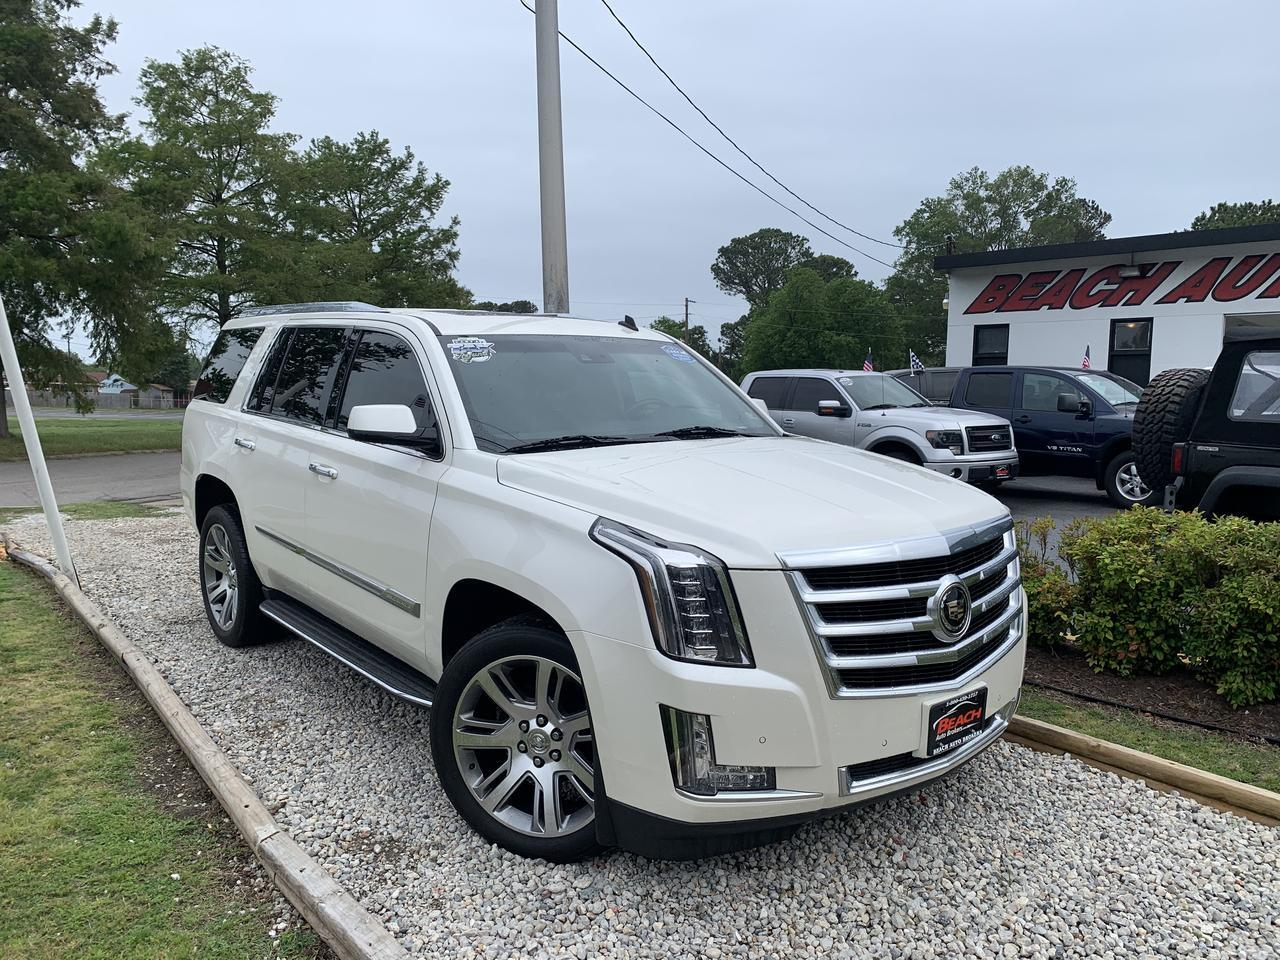 2015 CADILLAC ESCALADE PREMIUM 4X4, WARRANTY, LEATHER, NAV, SUNROOF, DVD PLAYER, 3RD ROW, BLUETOOTH, HEATED/COOLED SEATS! Norfolk VA